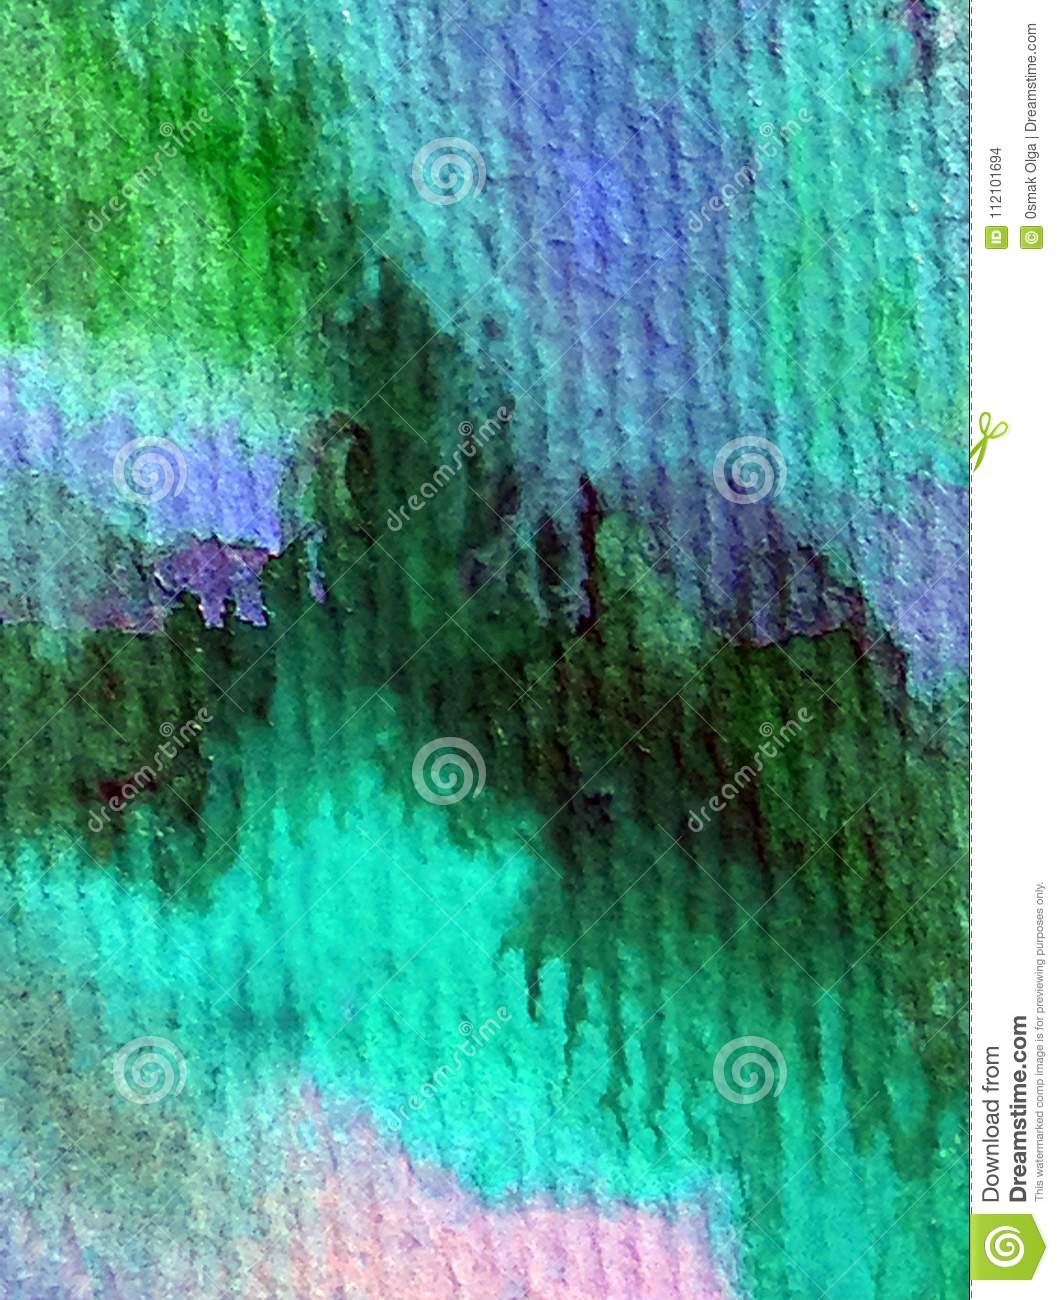 Watercolor art background abstract underwater world sea blue strokes textured wet wash blurred fantasy